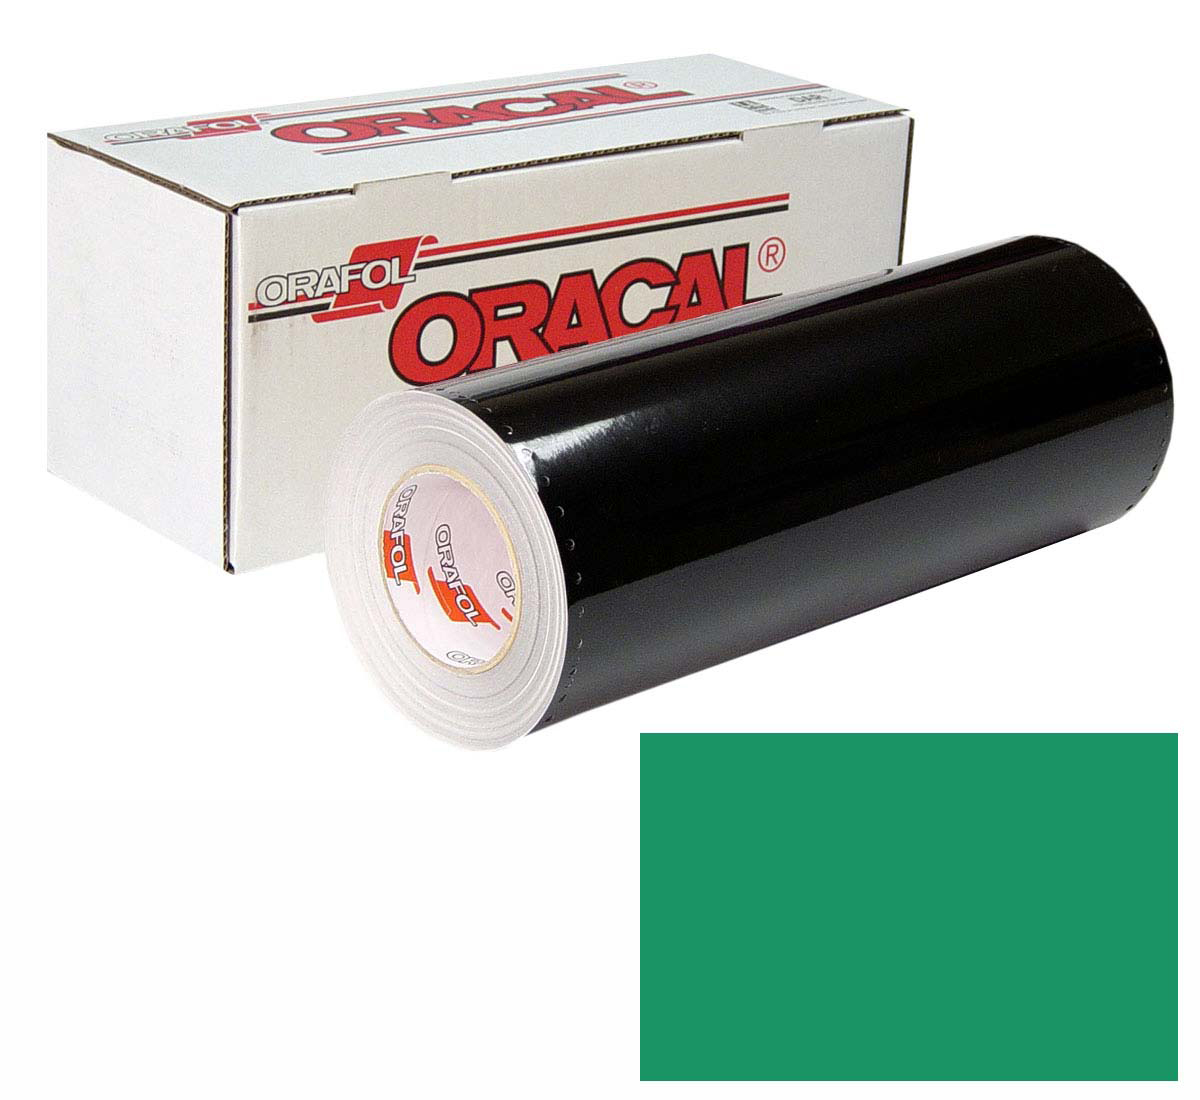 ORACAL 641 Unp 24In X 50Yd 062 Light Green